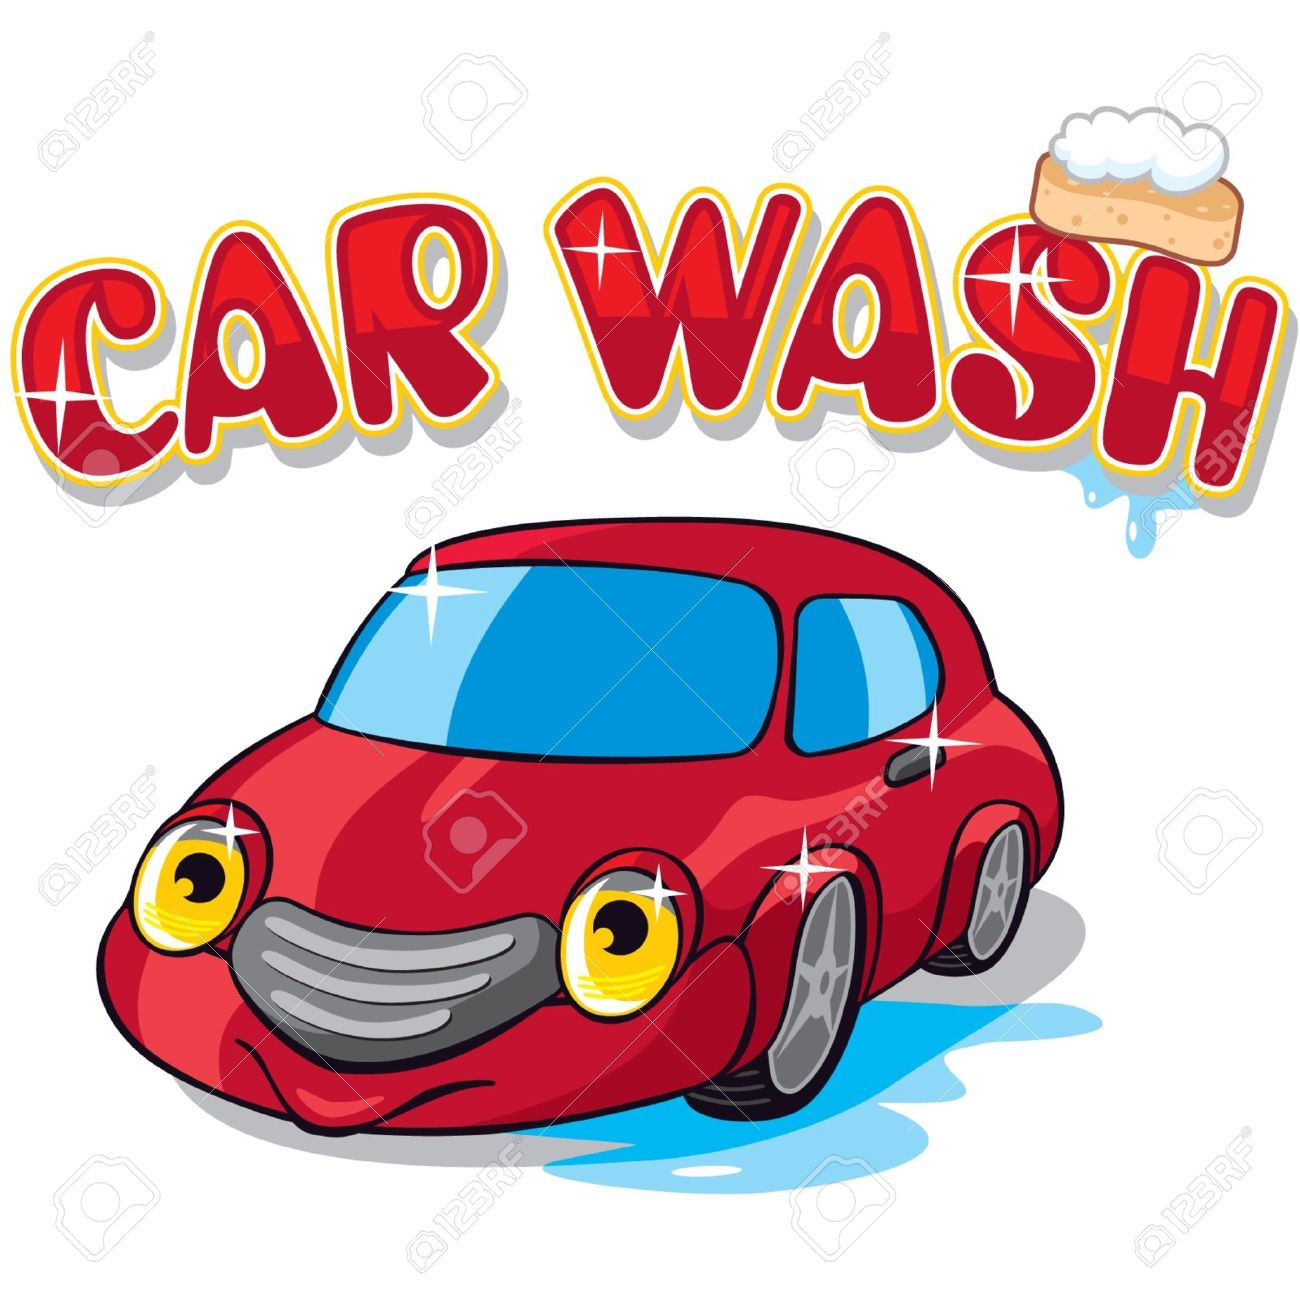 Cartoon Car With Car Wash Sign Royalty Free Cliparts Vectors And